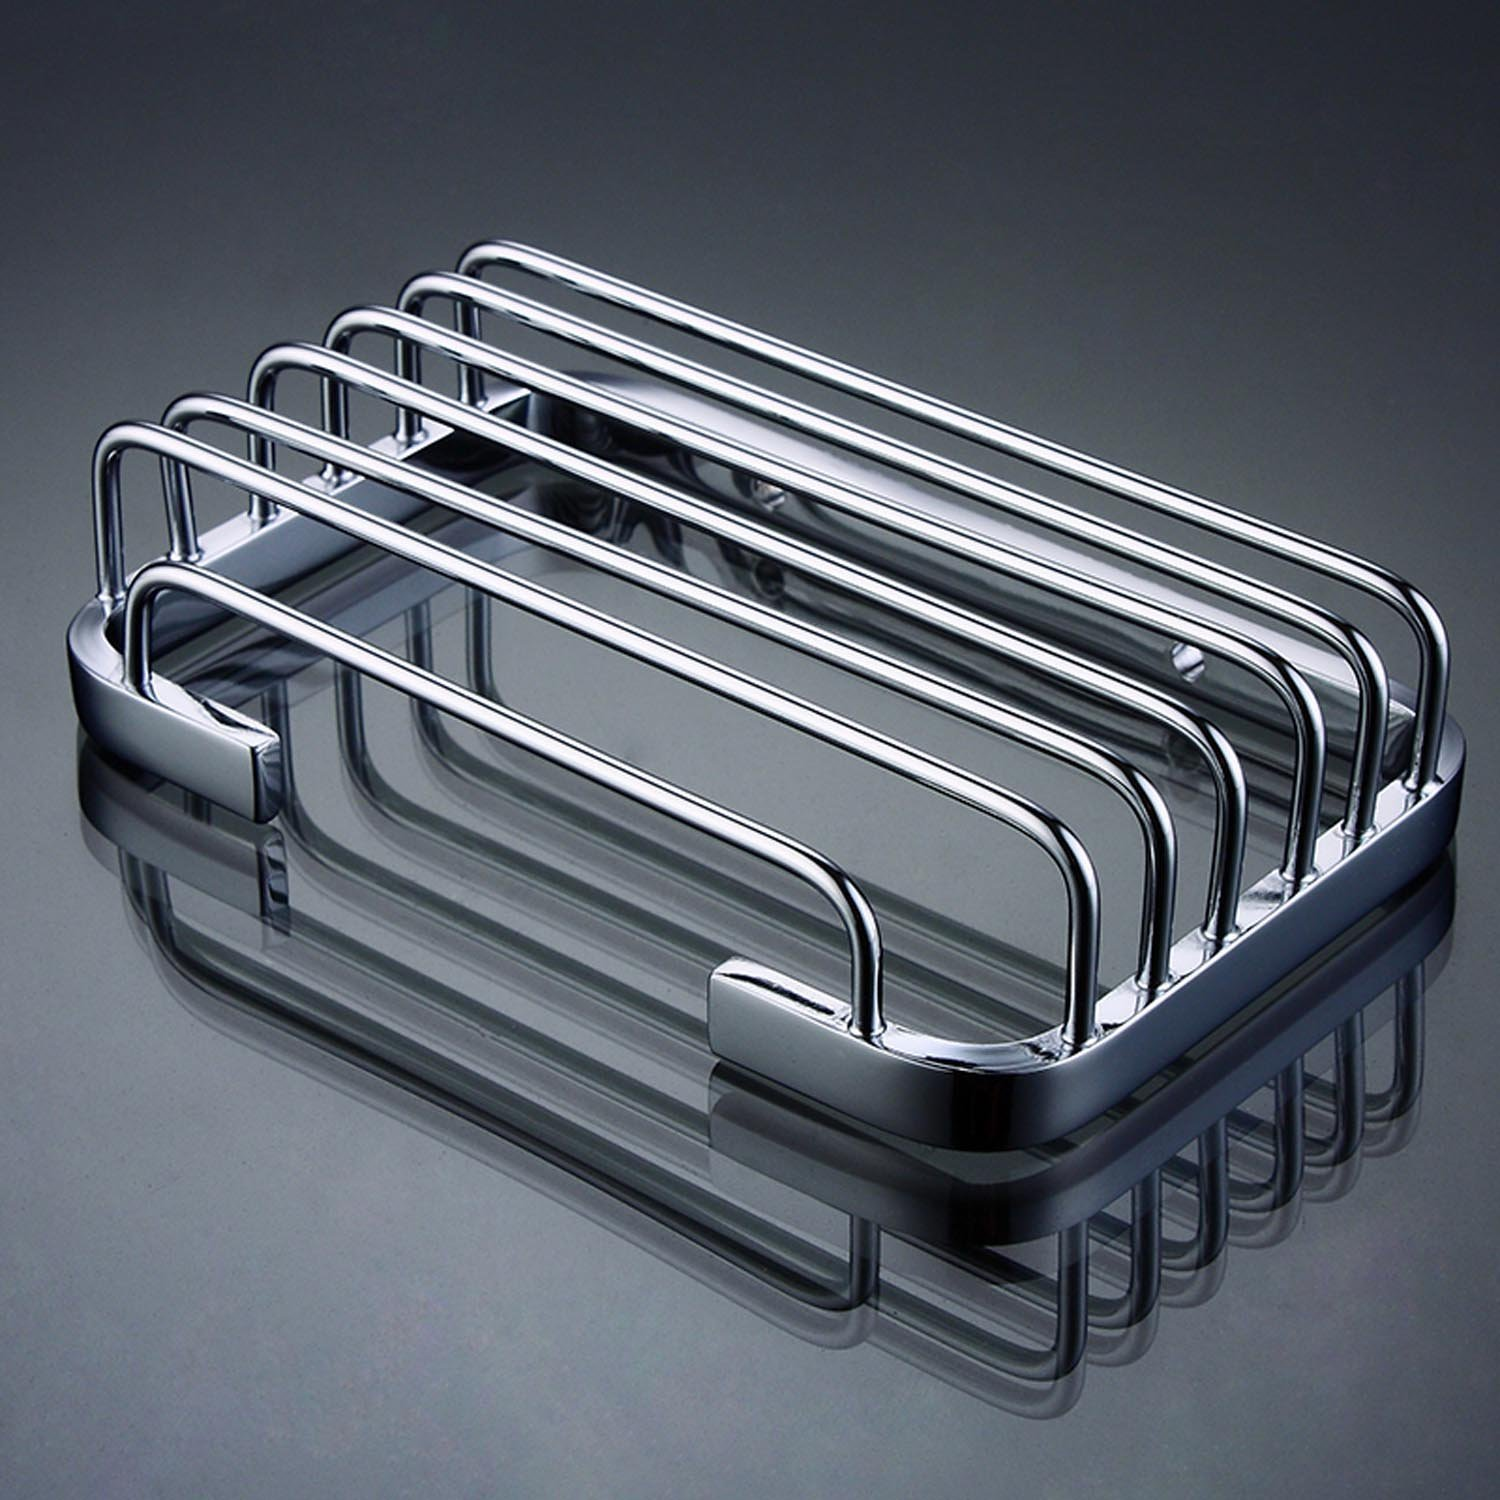 Amazon.com: ThinkTop Soap Dish for Shower Solid Brass Chrome ...